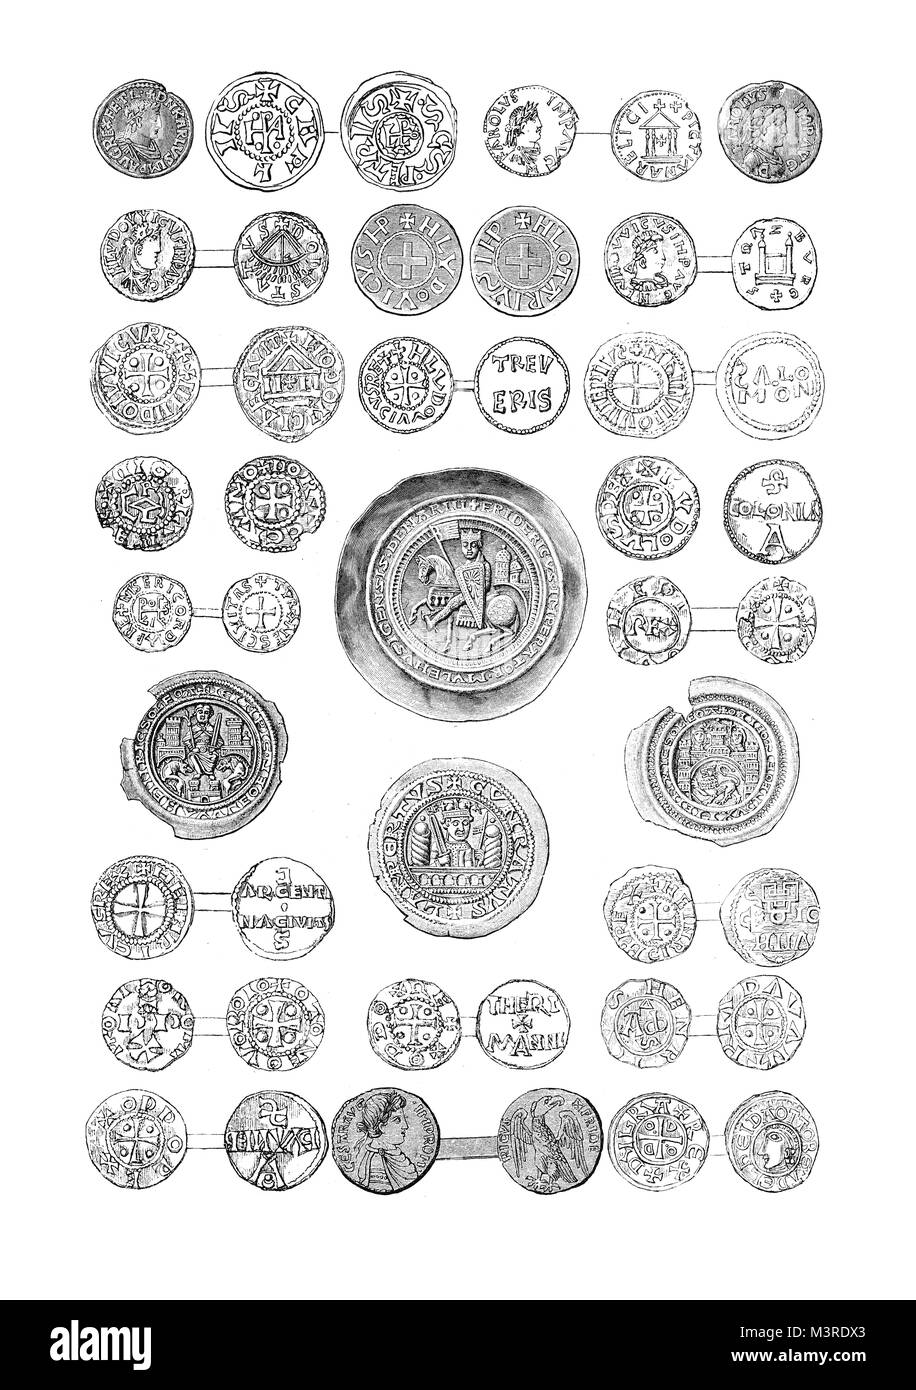 Vintage engraving of medieval coins of German kings and emperors - Stock Image